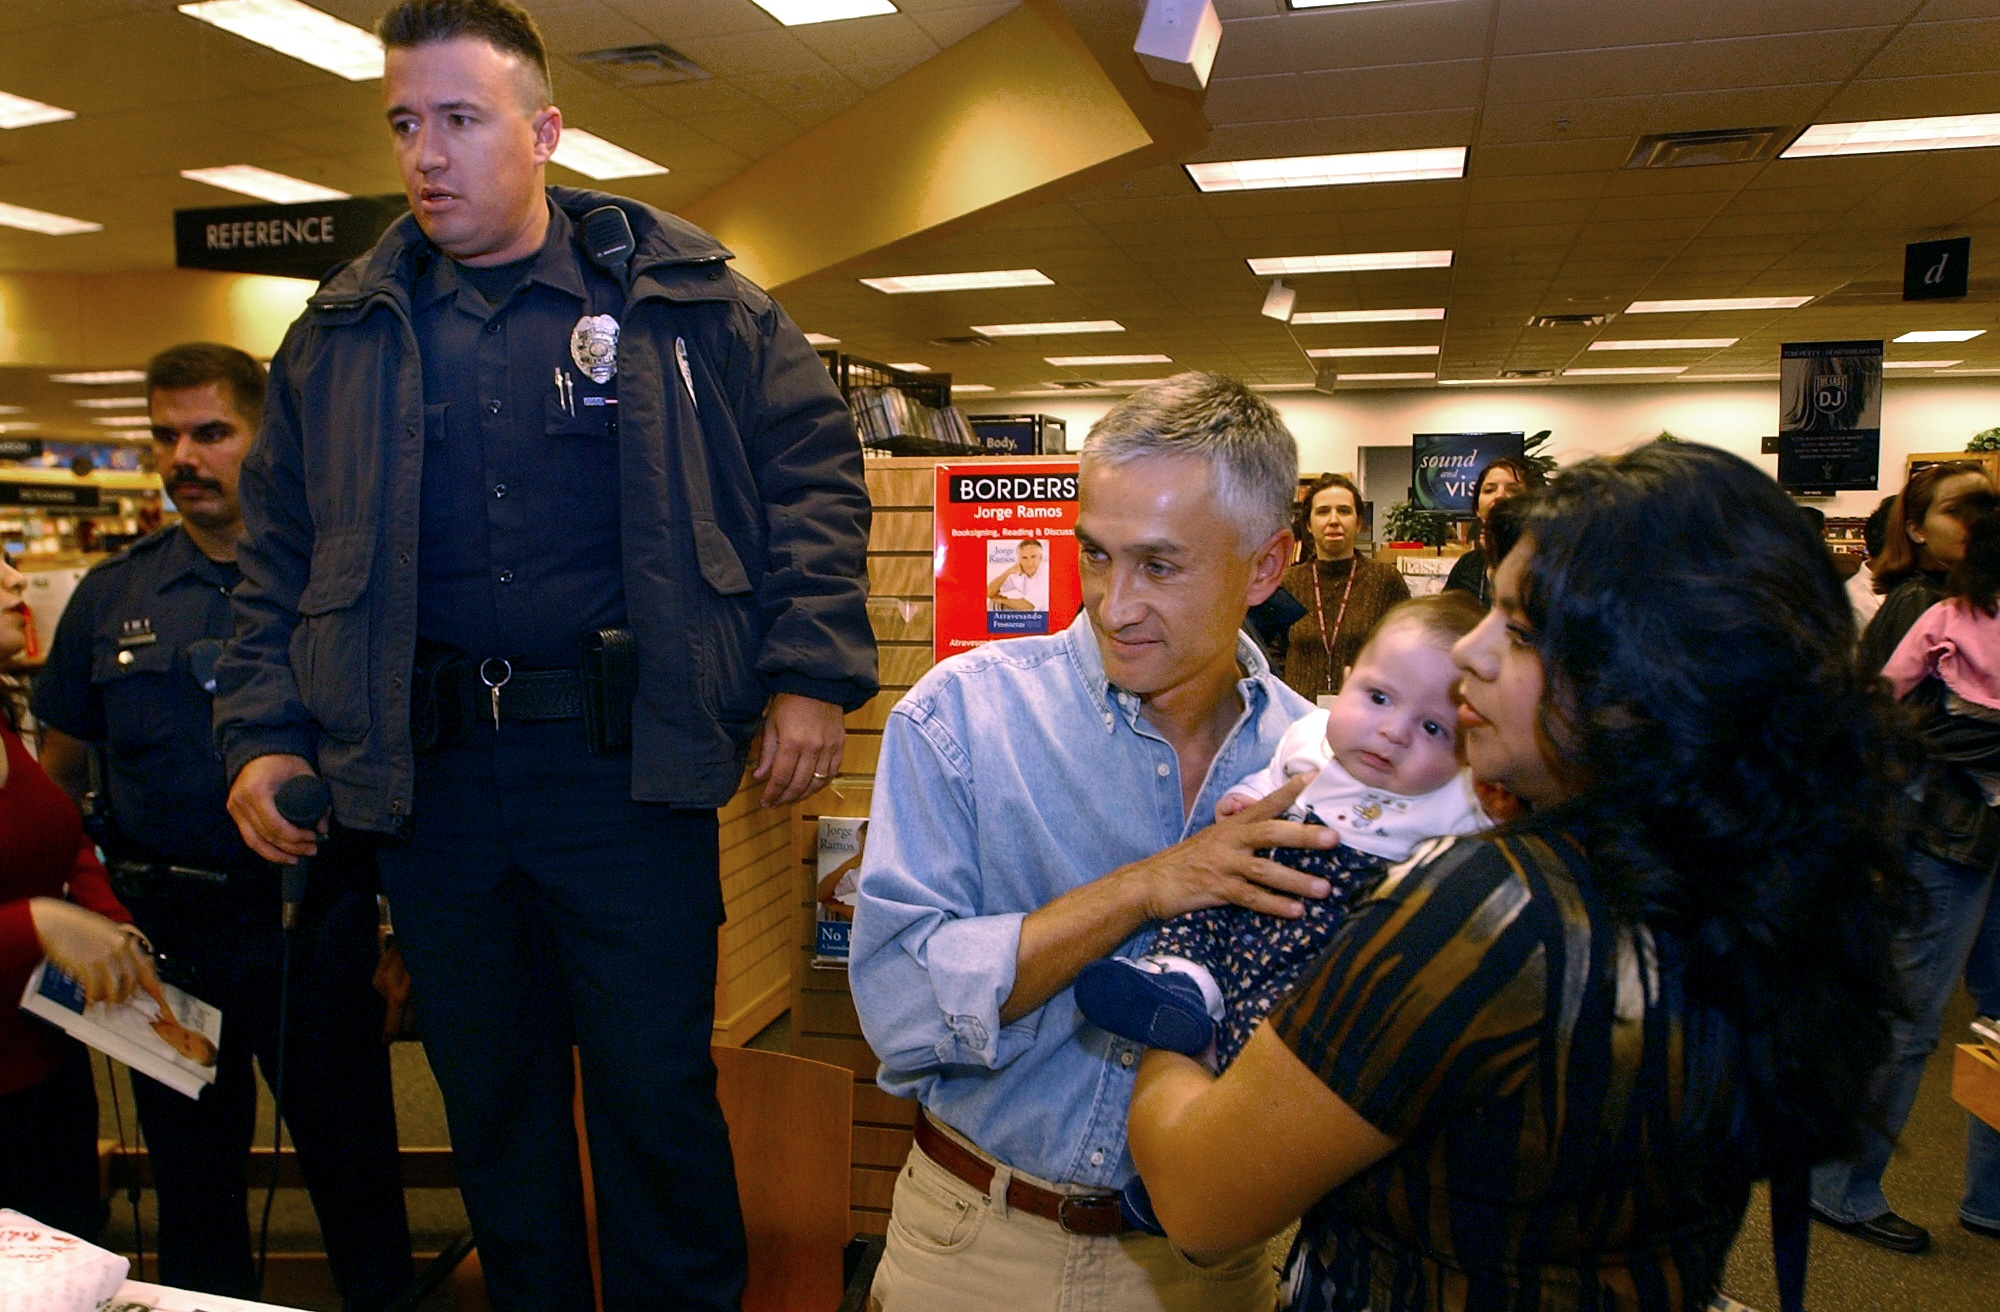 JORGE RAMOS The very popular anchor for Univision, a spanish news station, was bombarded by thousands of people who showed up at the Borders bookstore in Northglenn to buy his new book and get his autograph. The Northglenn police finally had to arrive to